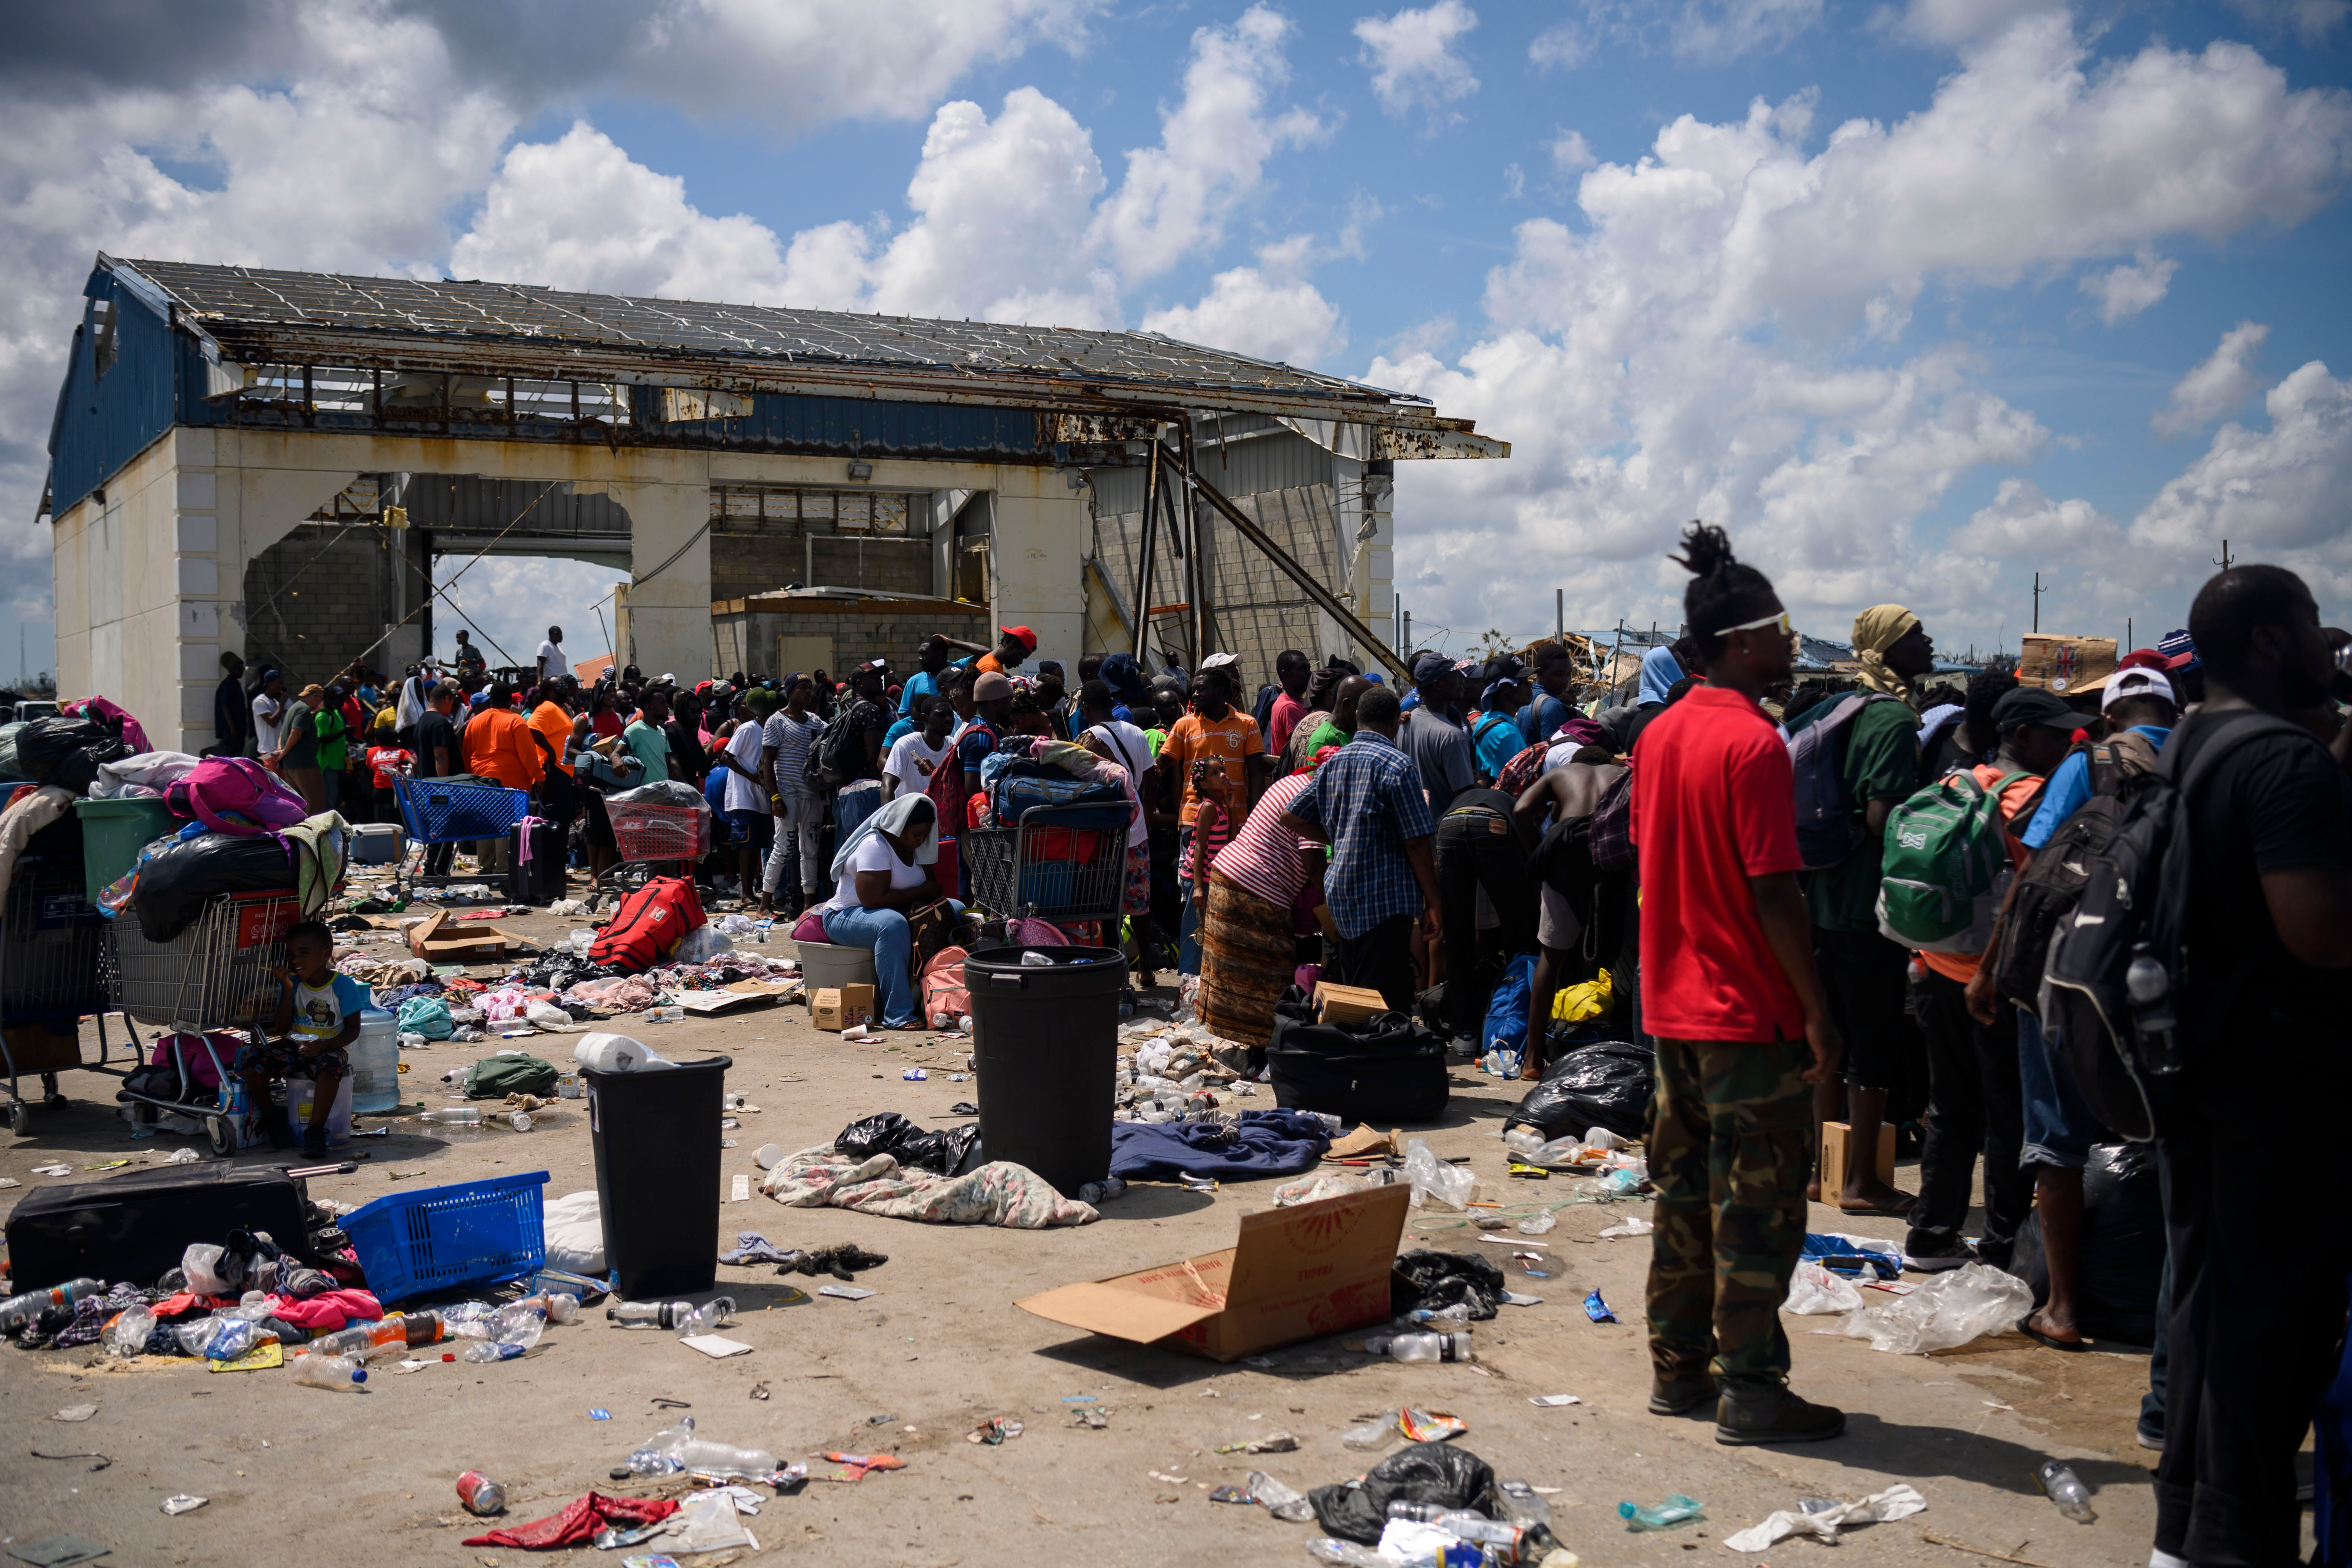 Bahamas evacuees told to get off ferry headed to the U.S.